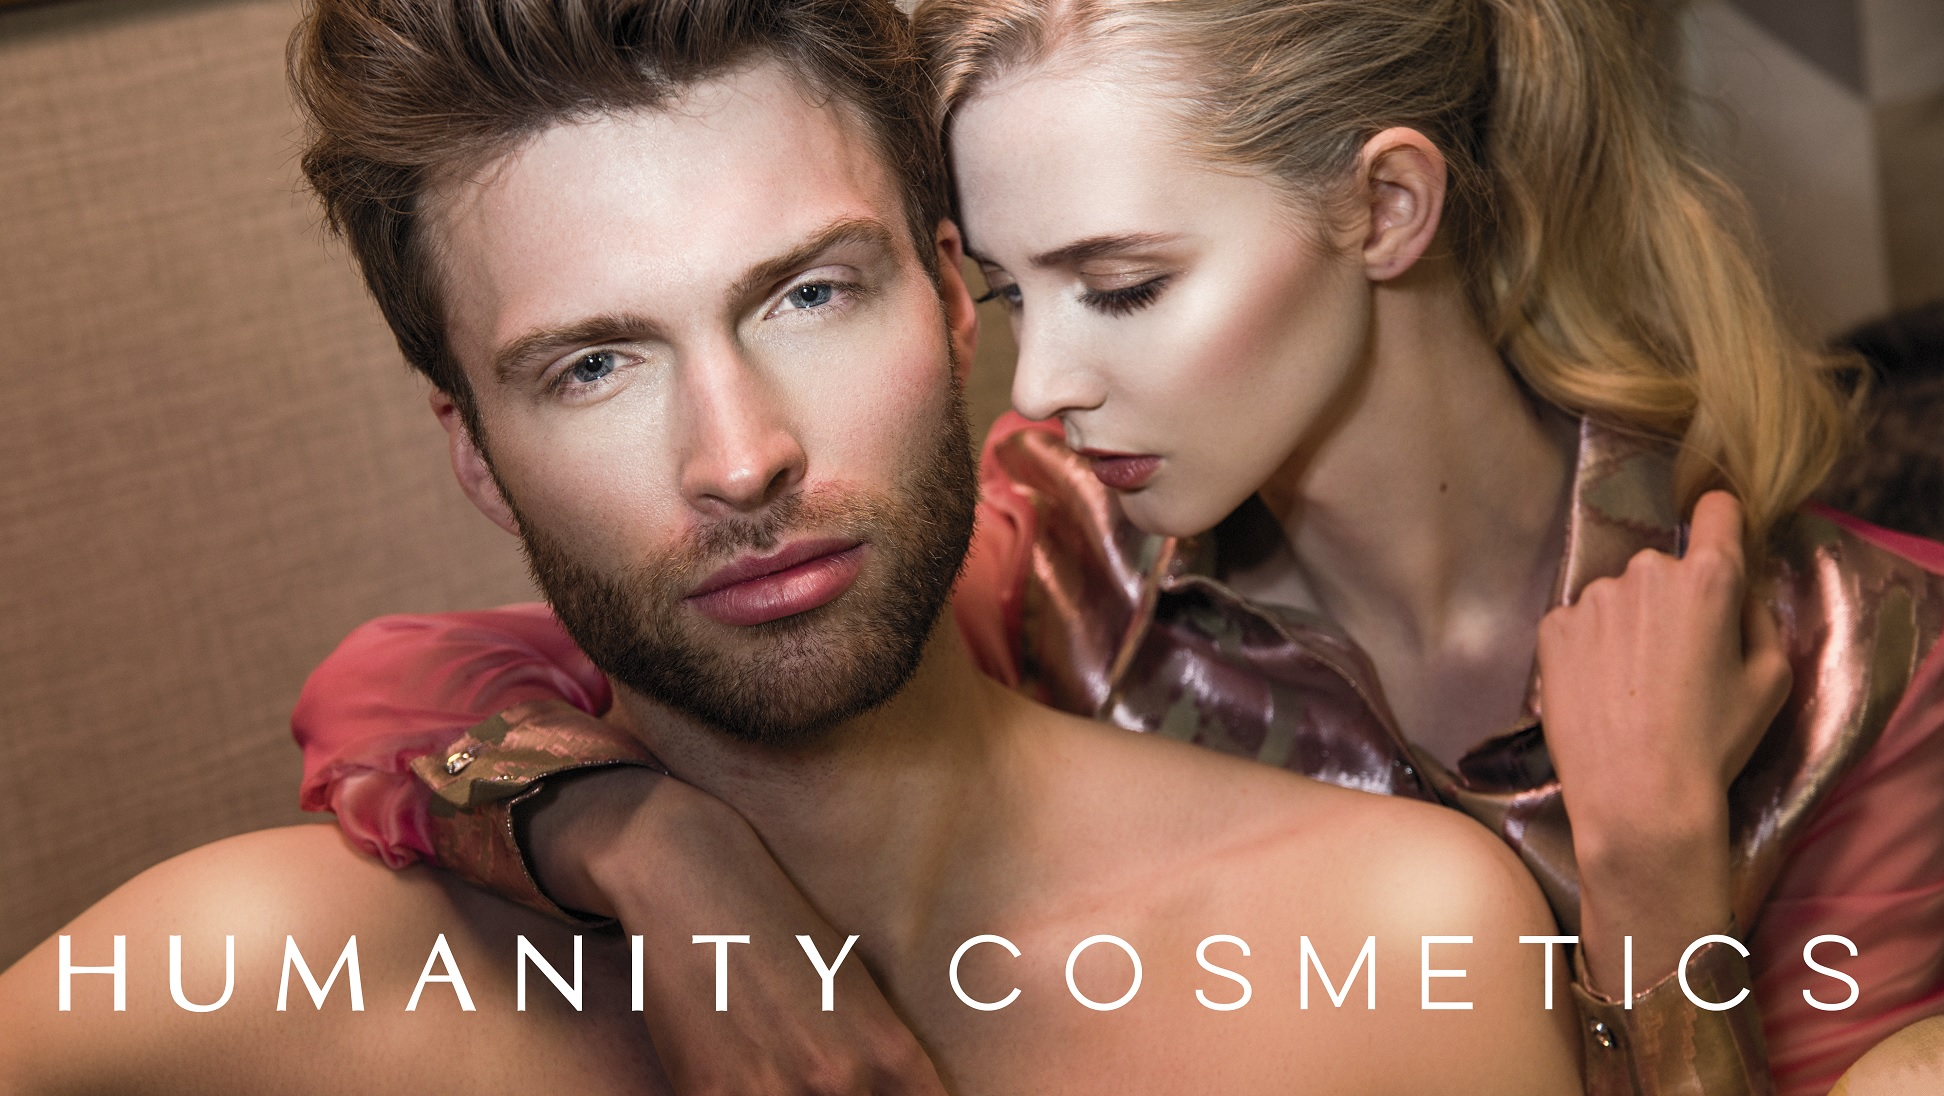 HUMANITY COSMETICS MALE SKINCARE AND GROOMING FOR MEN - LUXURY - NATURAL - ORGANIC - SKIN CARE - JELLYFISH